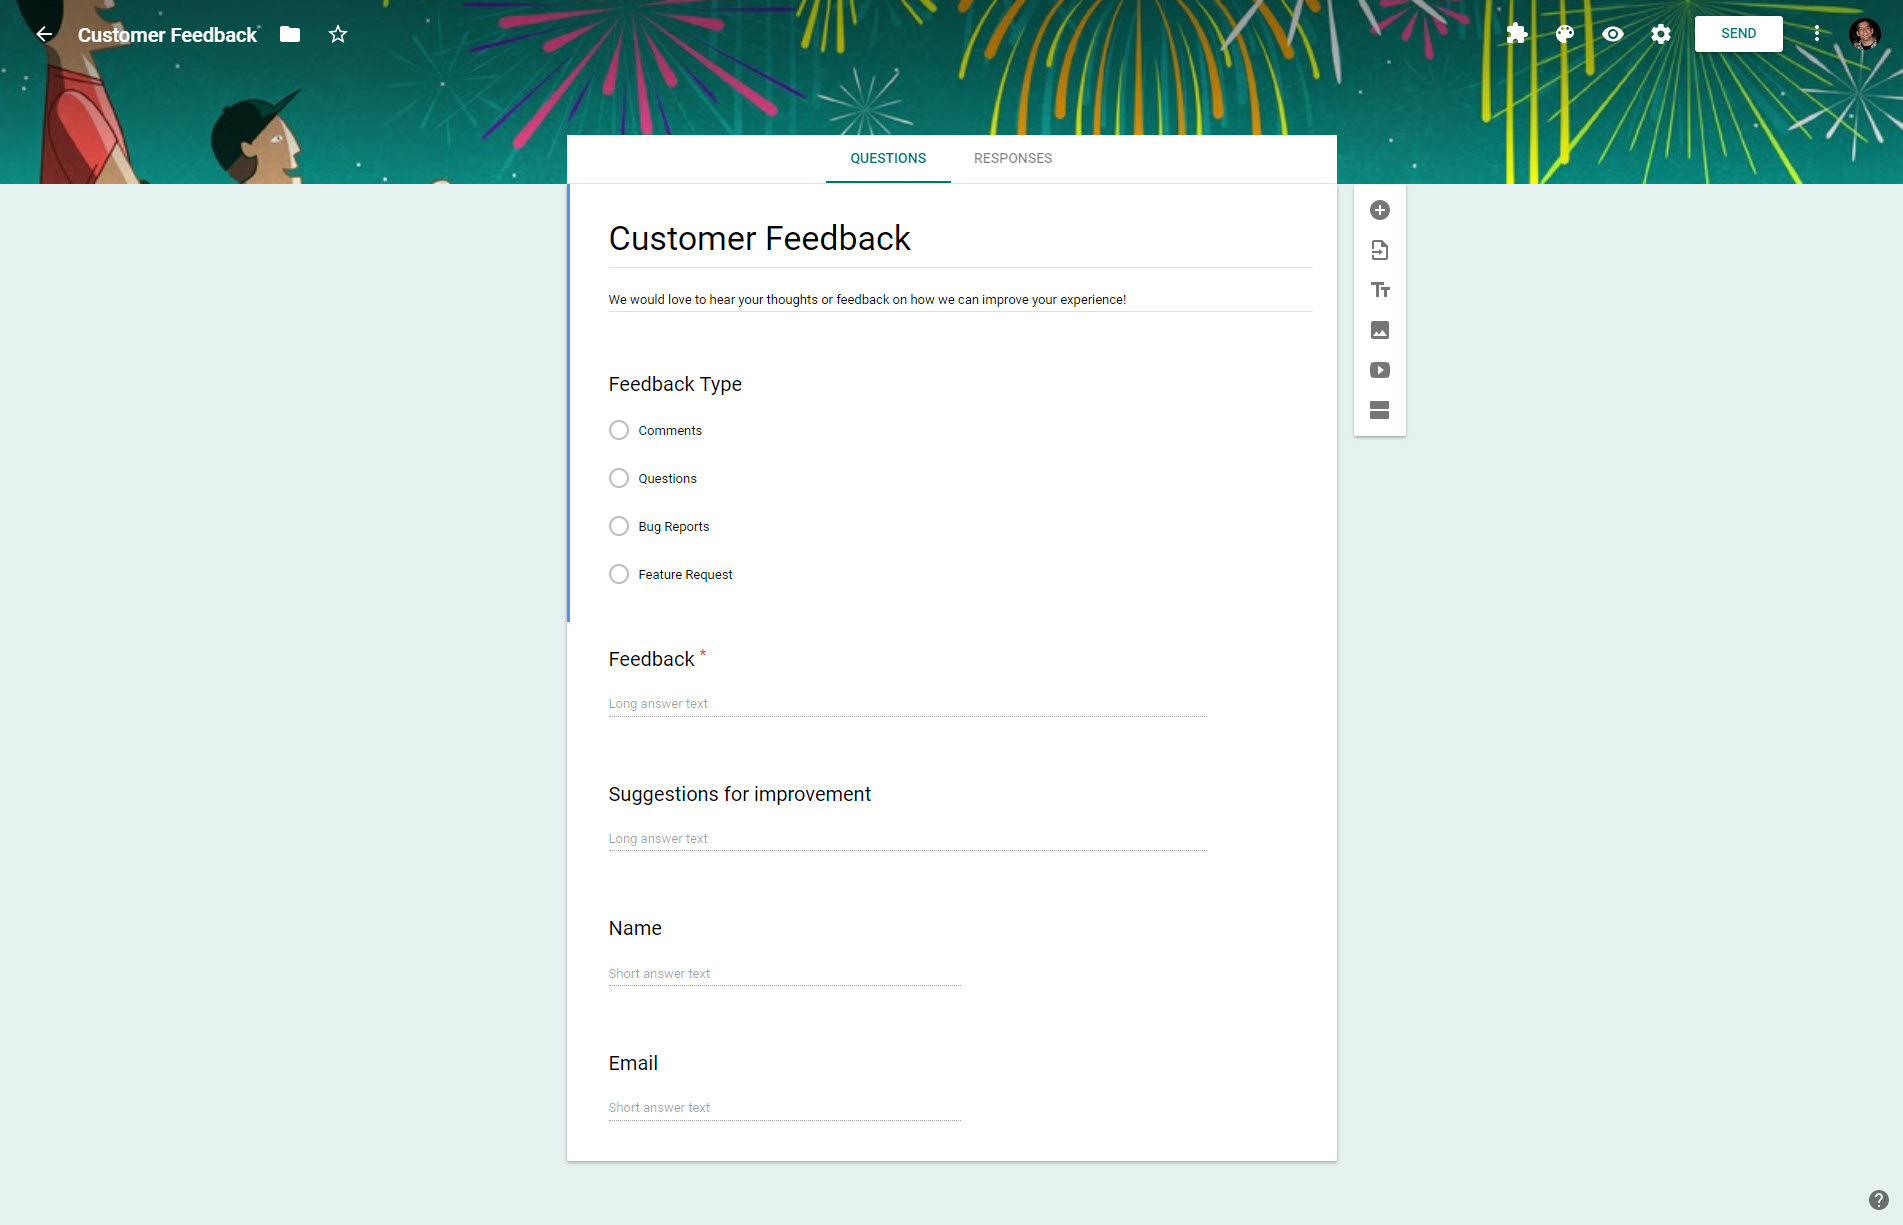 The default customer feedback template